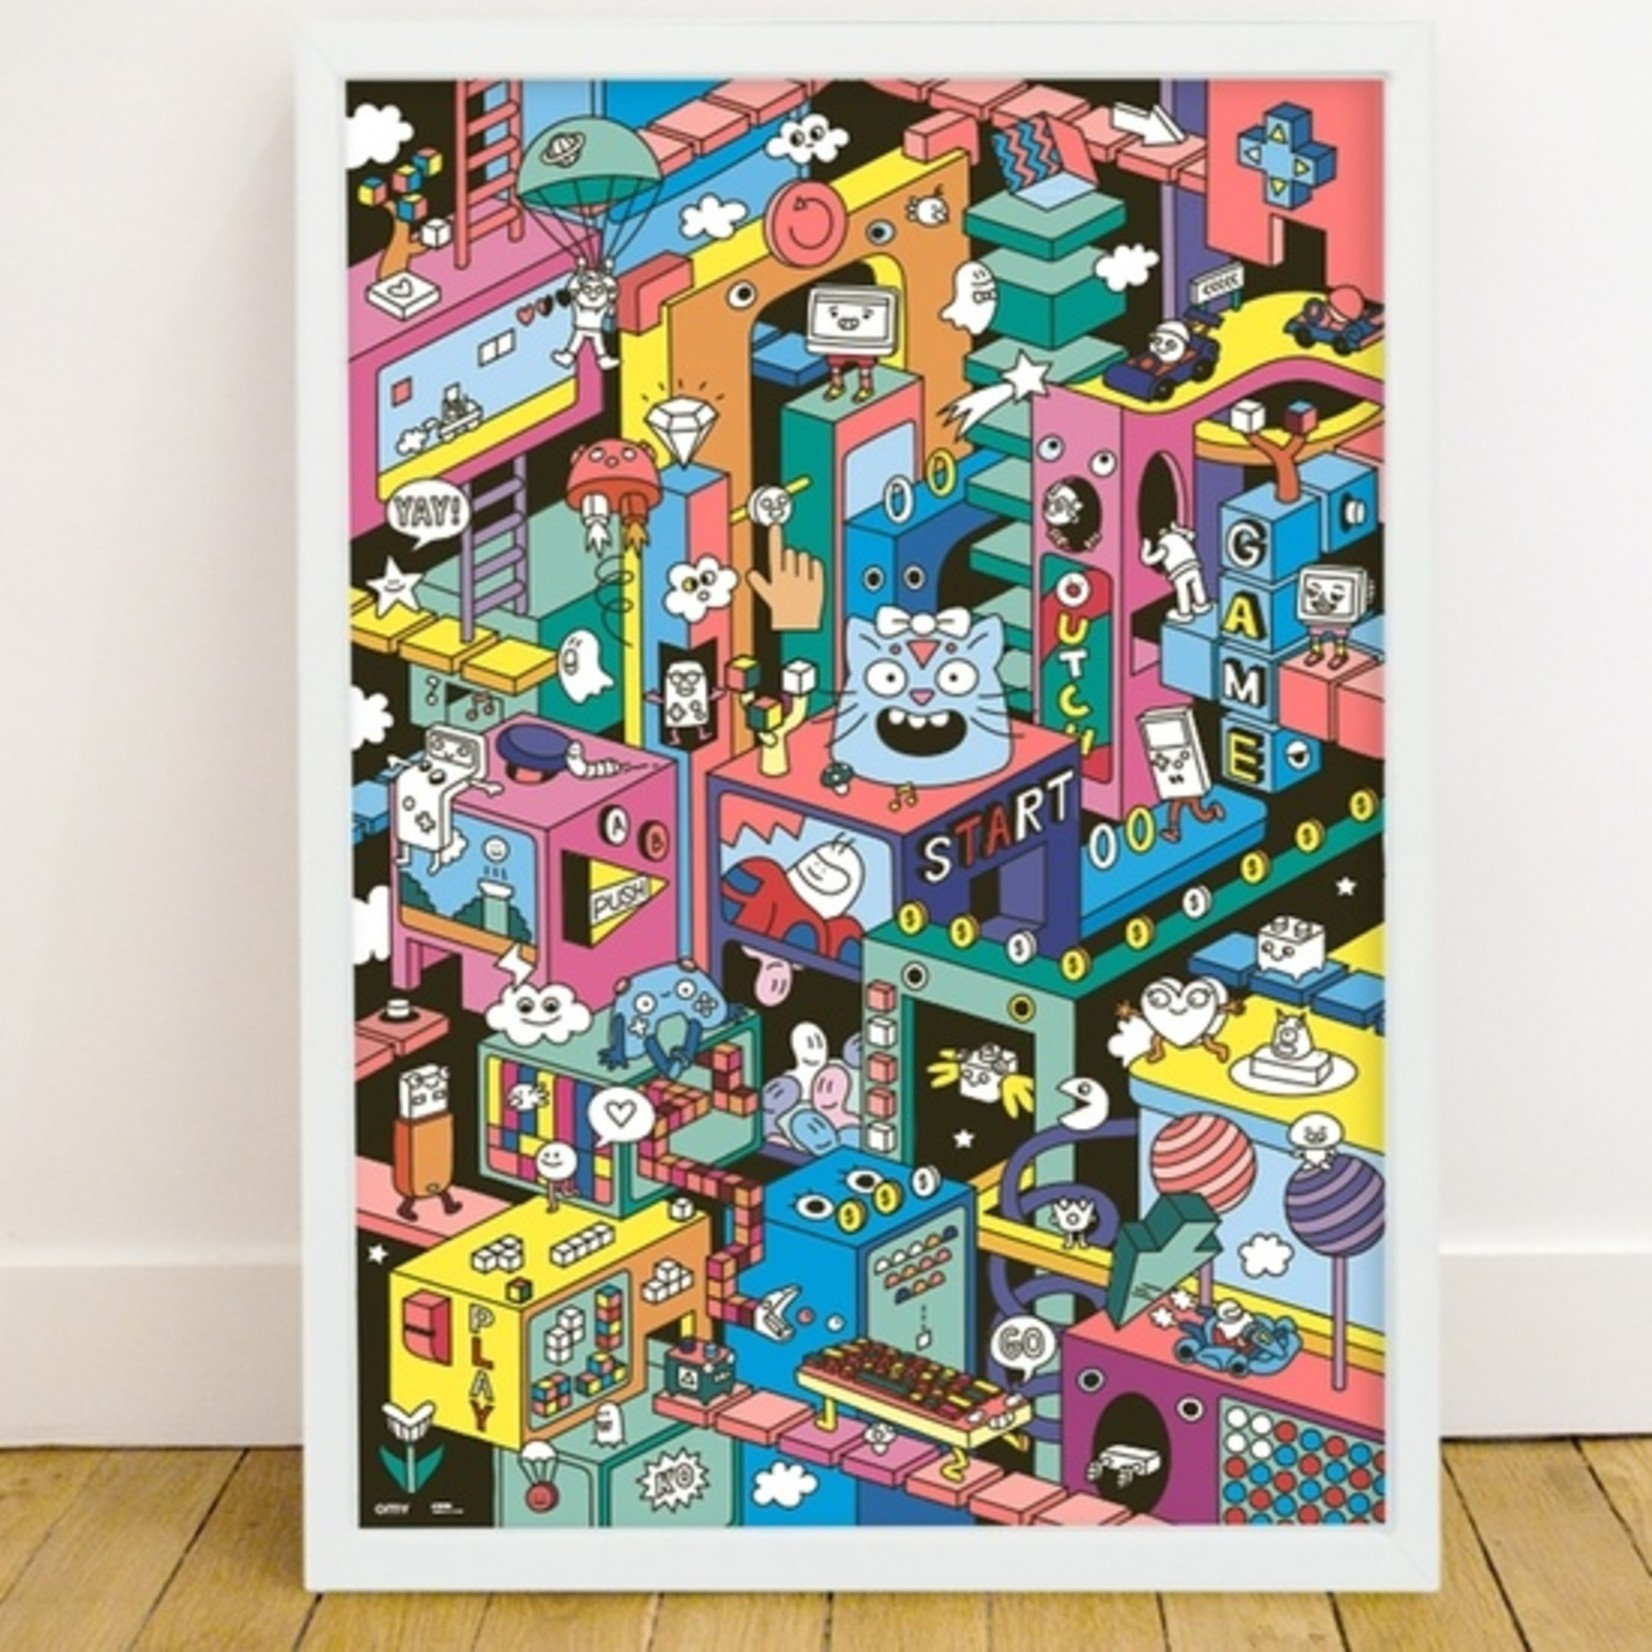 Video Game Giant Sticker Poster